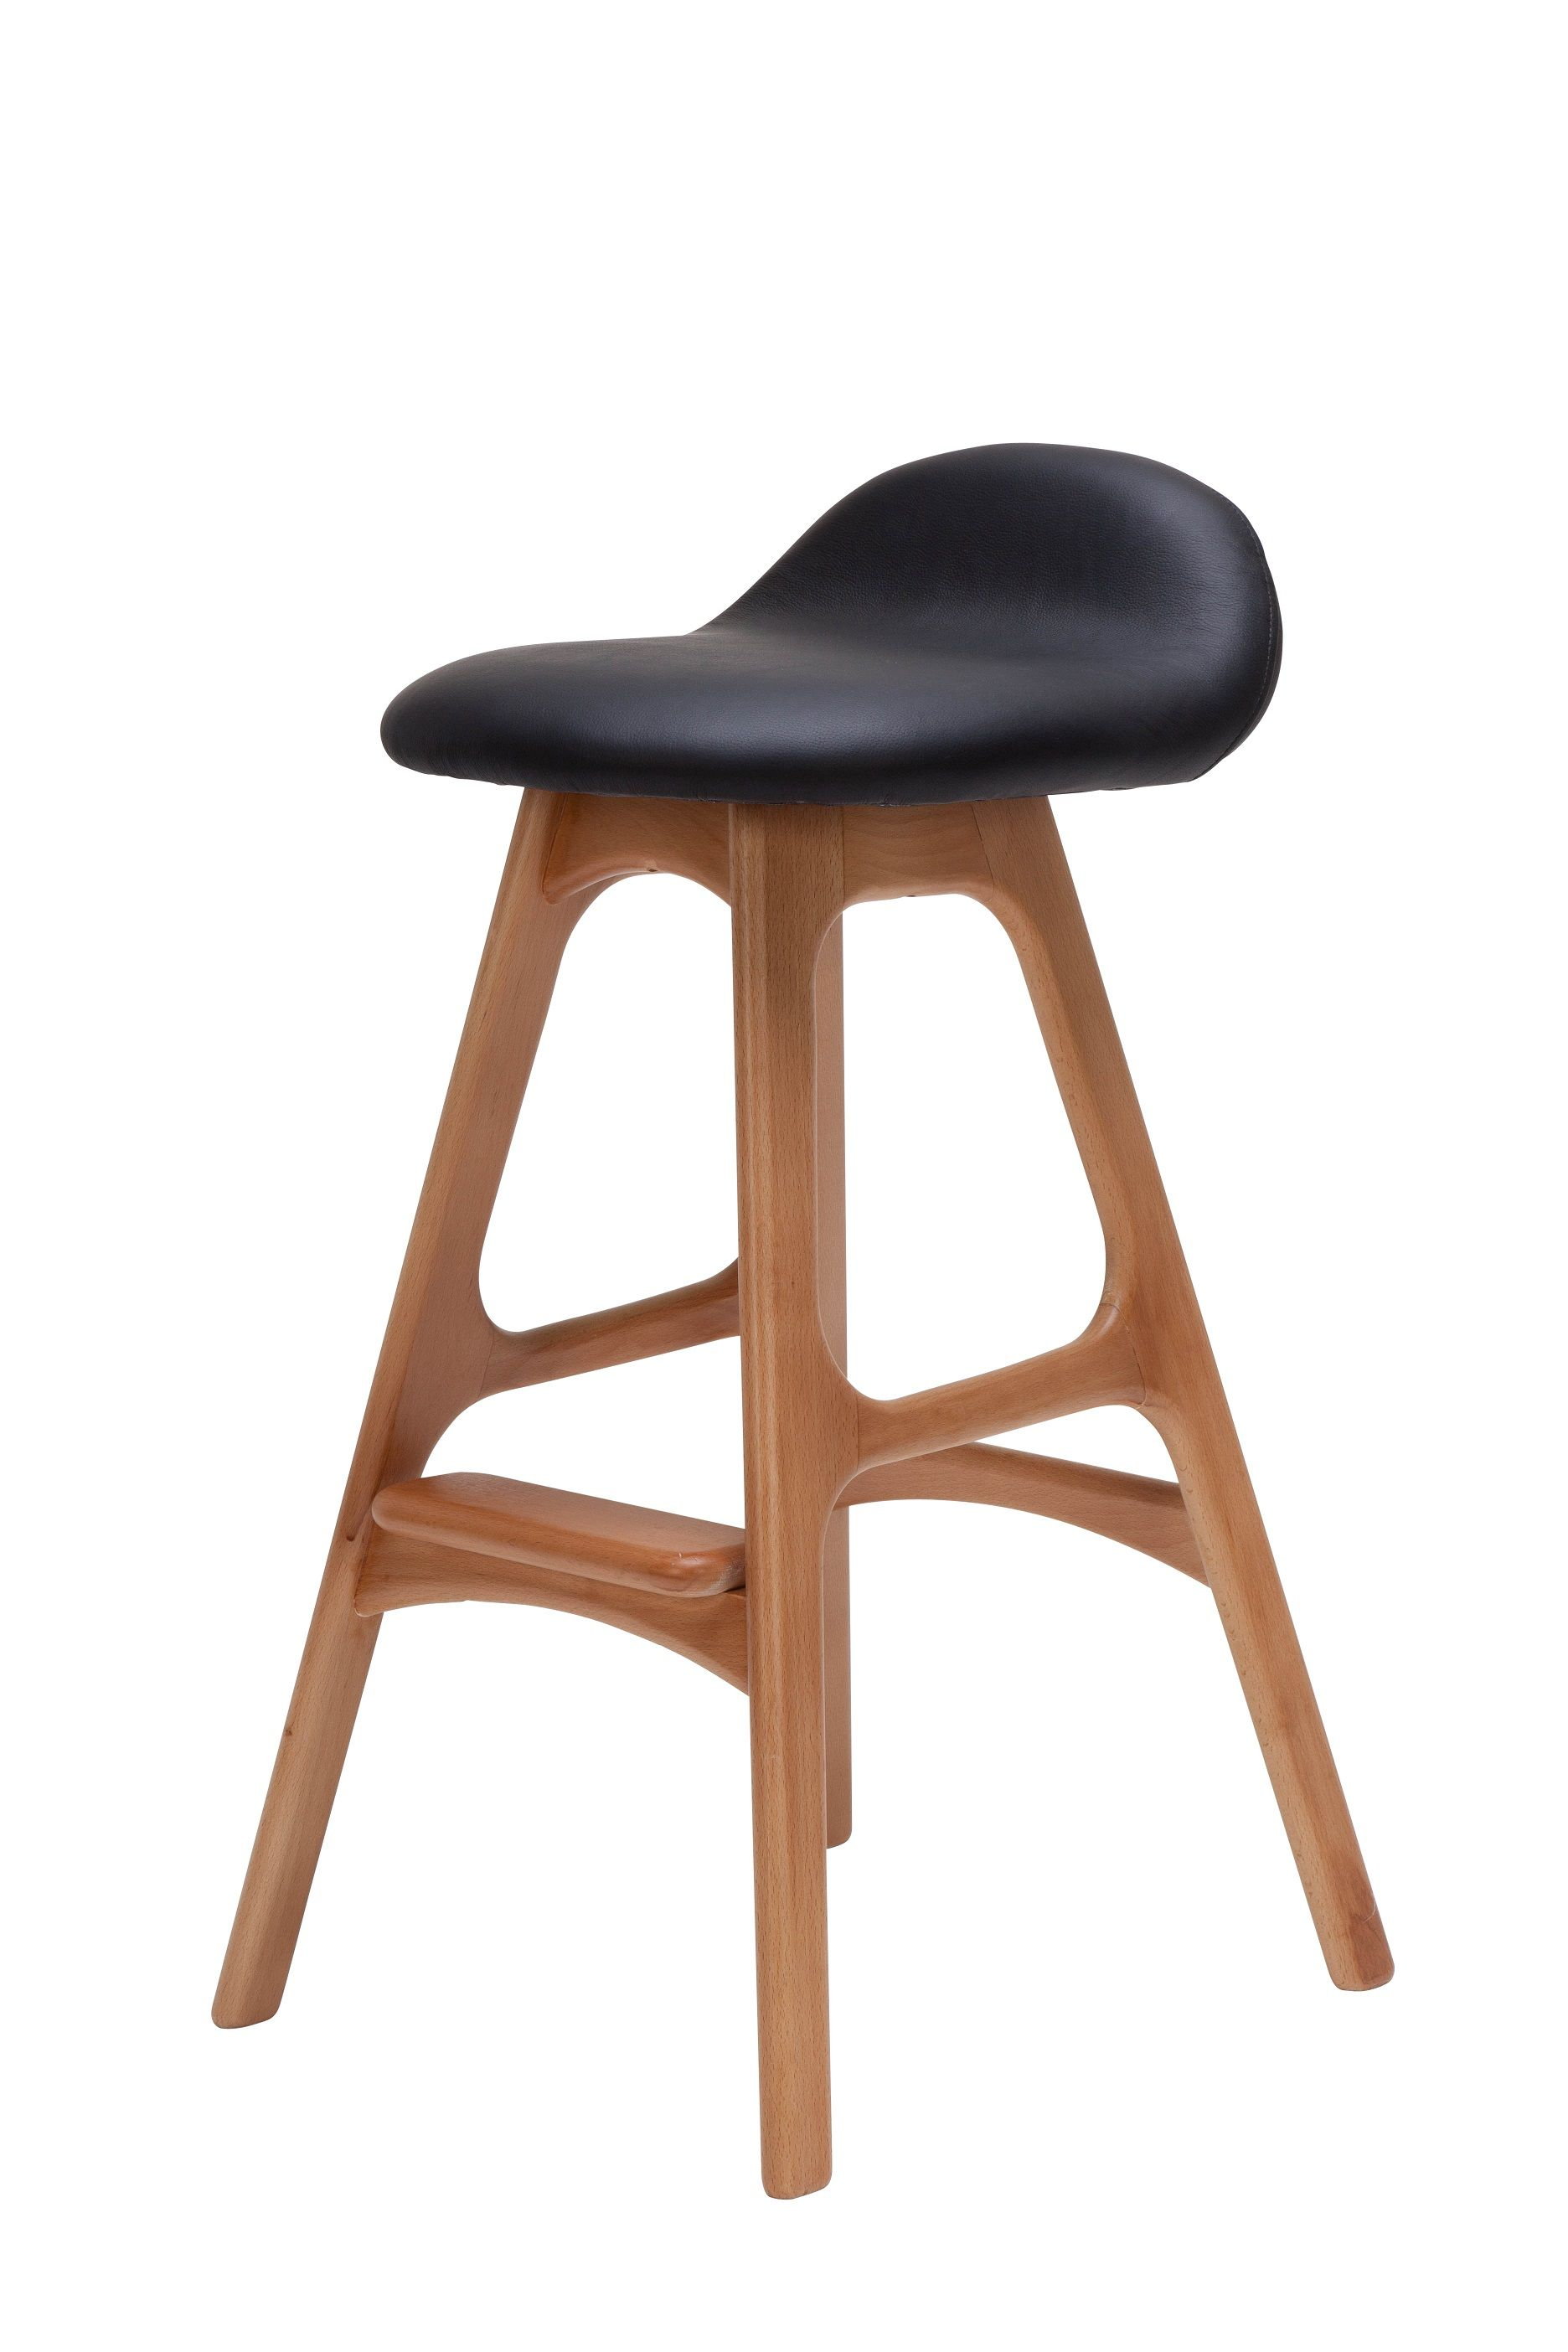 modern bar stools counter height | barhocker, barstühle und